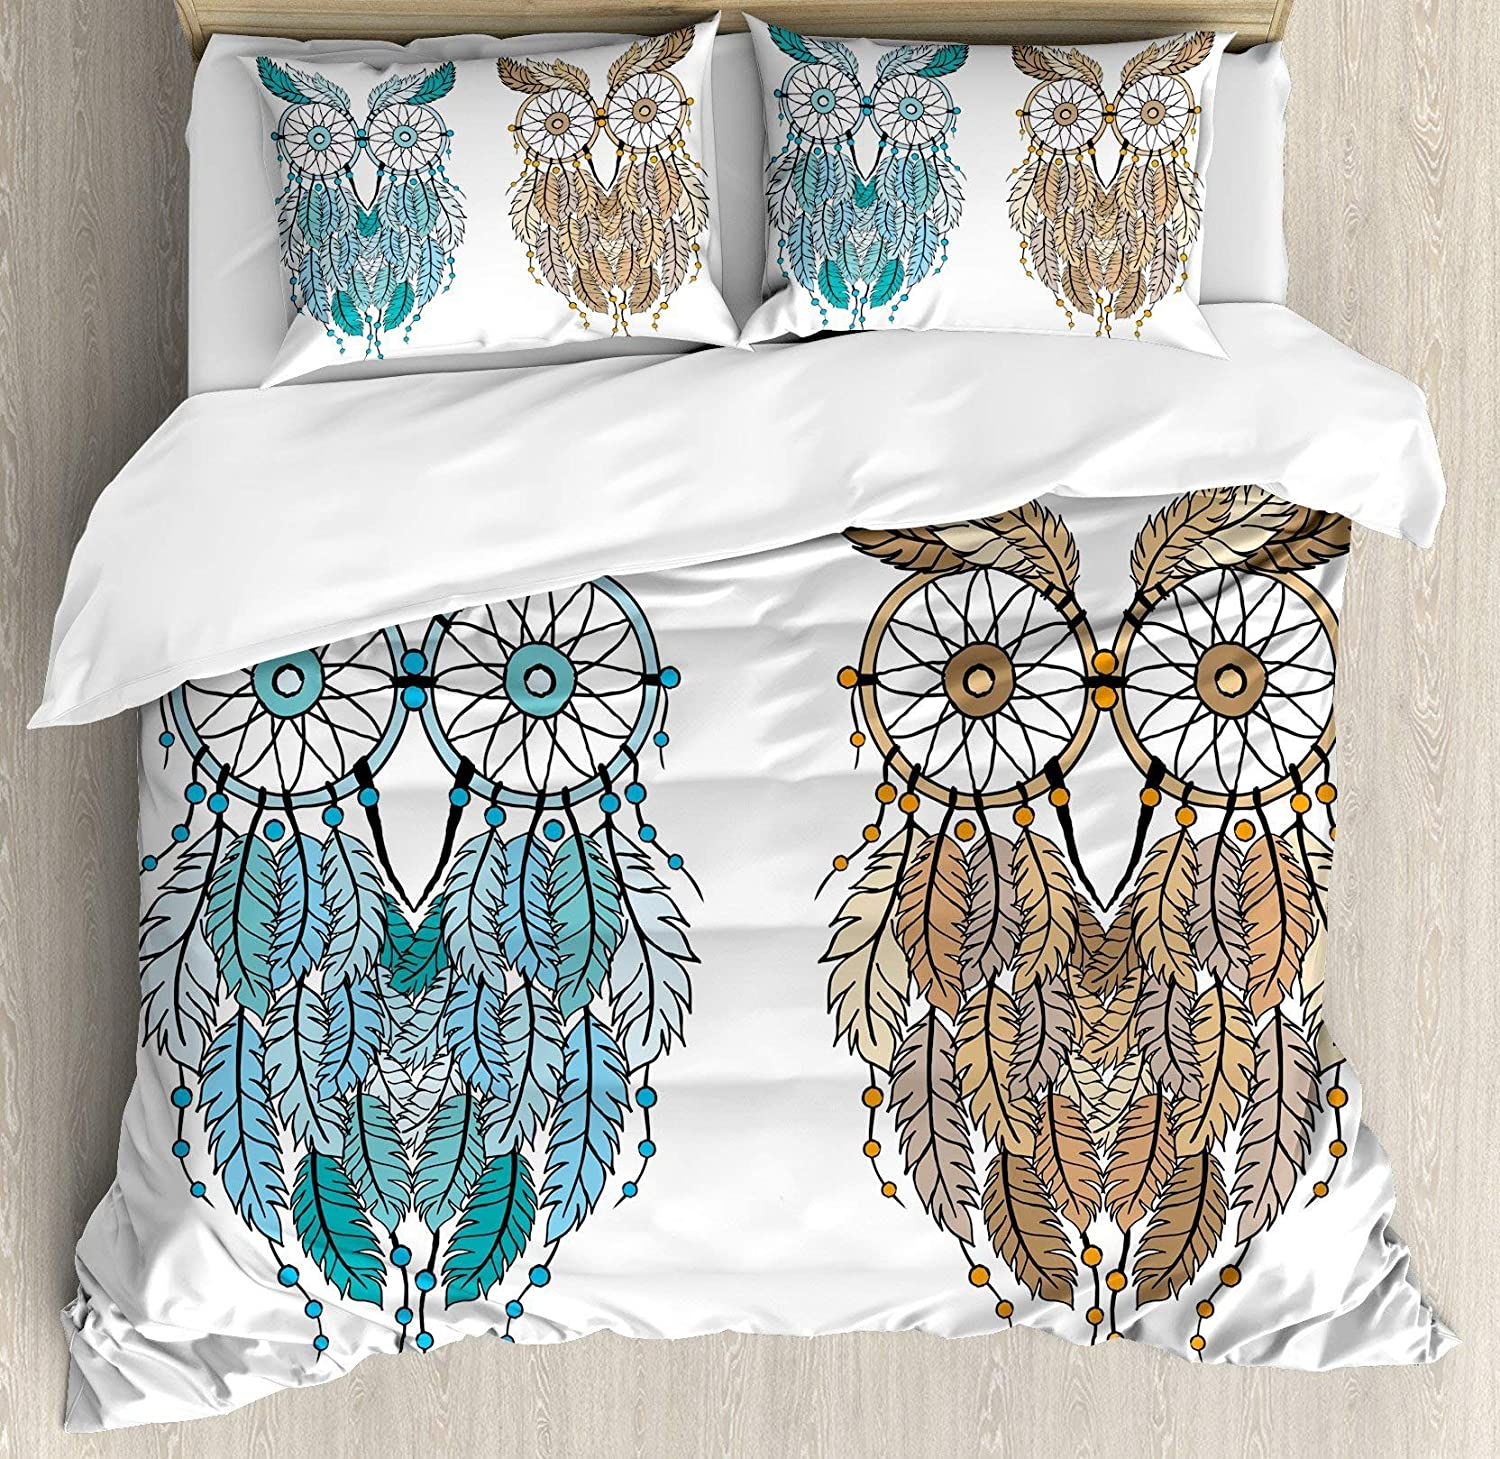 USOPHIA Owl 4 Pieces Bed Sheets Set Twin Size, Dreamcatcher Style Owl Tribal Ethnic Features Magic Farsighted Birds Artsy Print Floral Duvet Cover Set, Cream White Teal